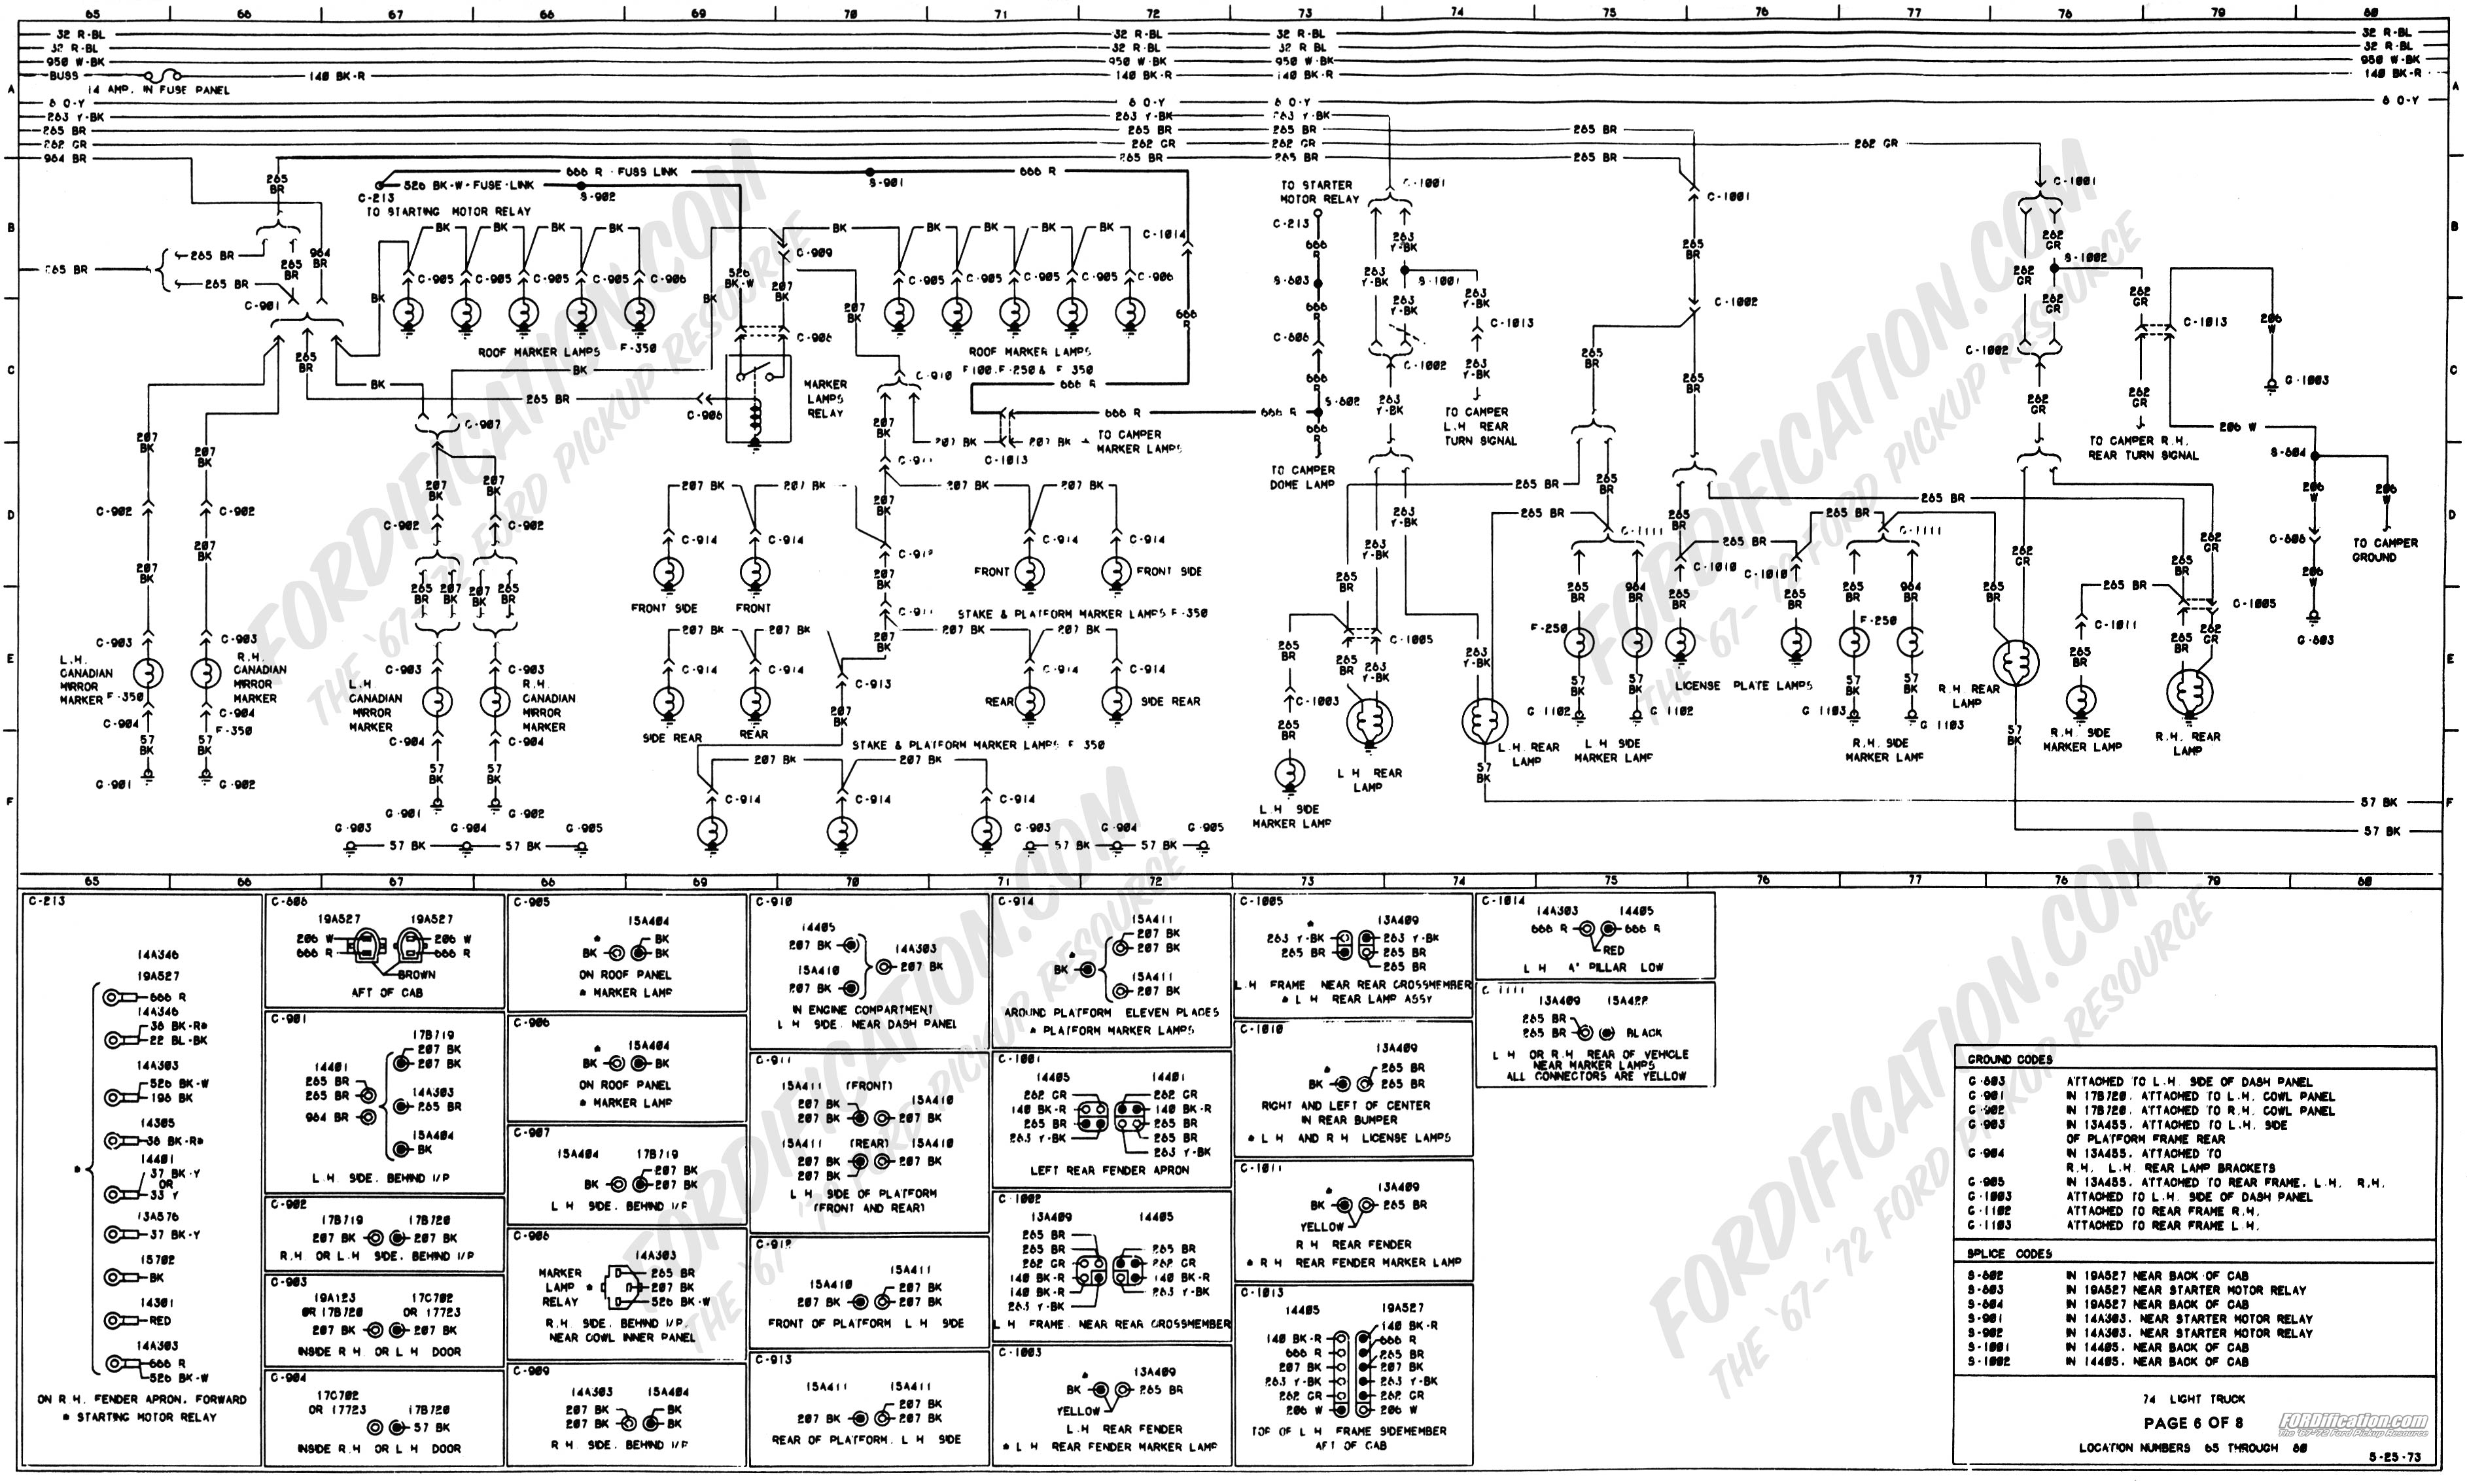 1977 Dodge Ignition Wiring Diagram http://fordification.net/tech/wiring.htm